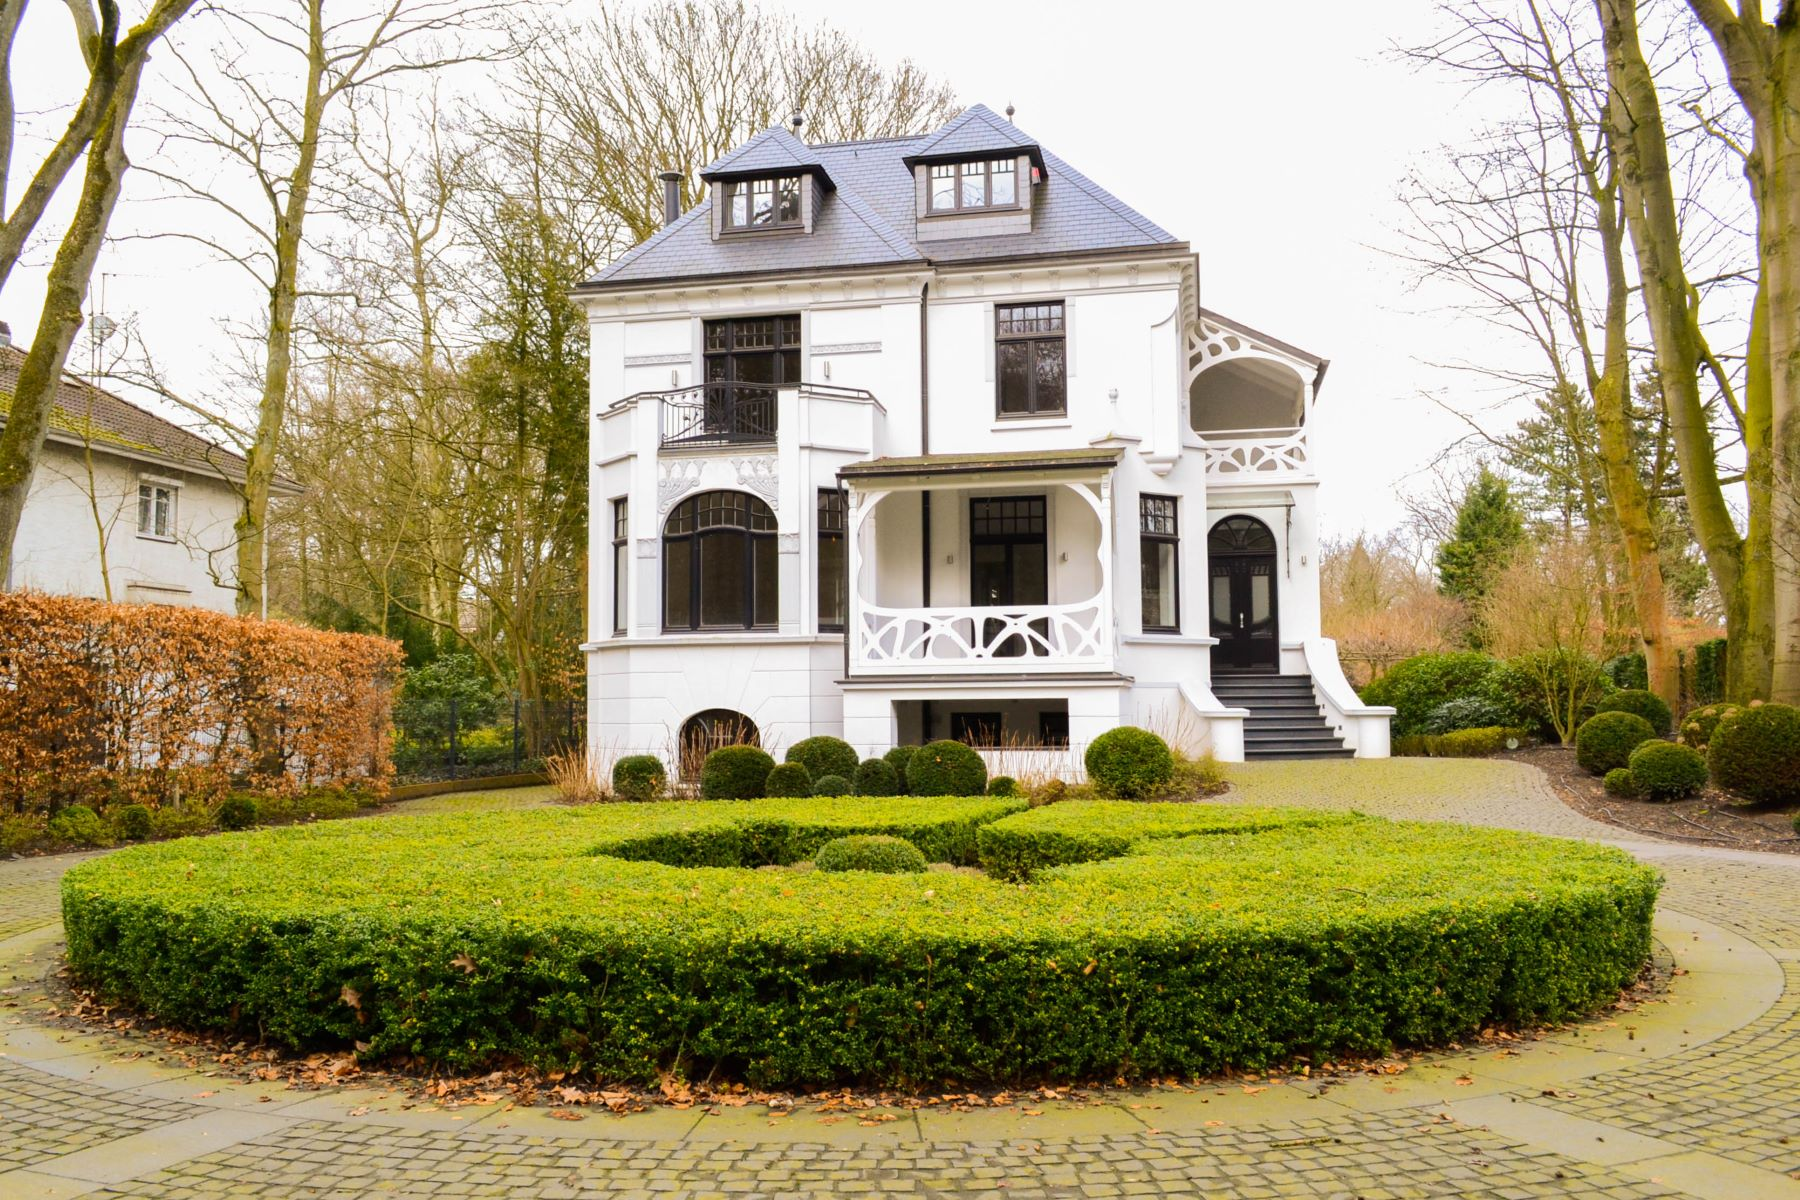 Single Family Home for Sale at Magnificent historical villa in Hamburg, Blankenese Elbchaussee 460 Hamburg, Hamburg, 22587 Germany